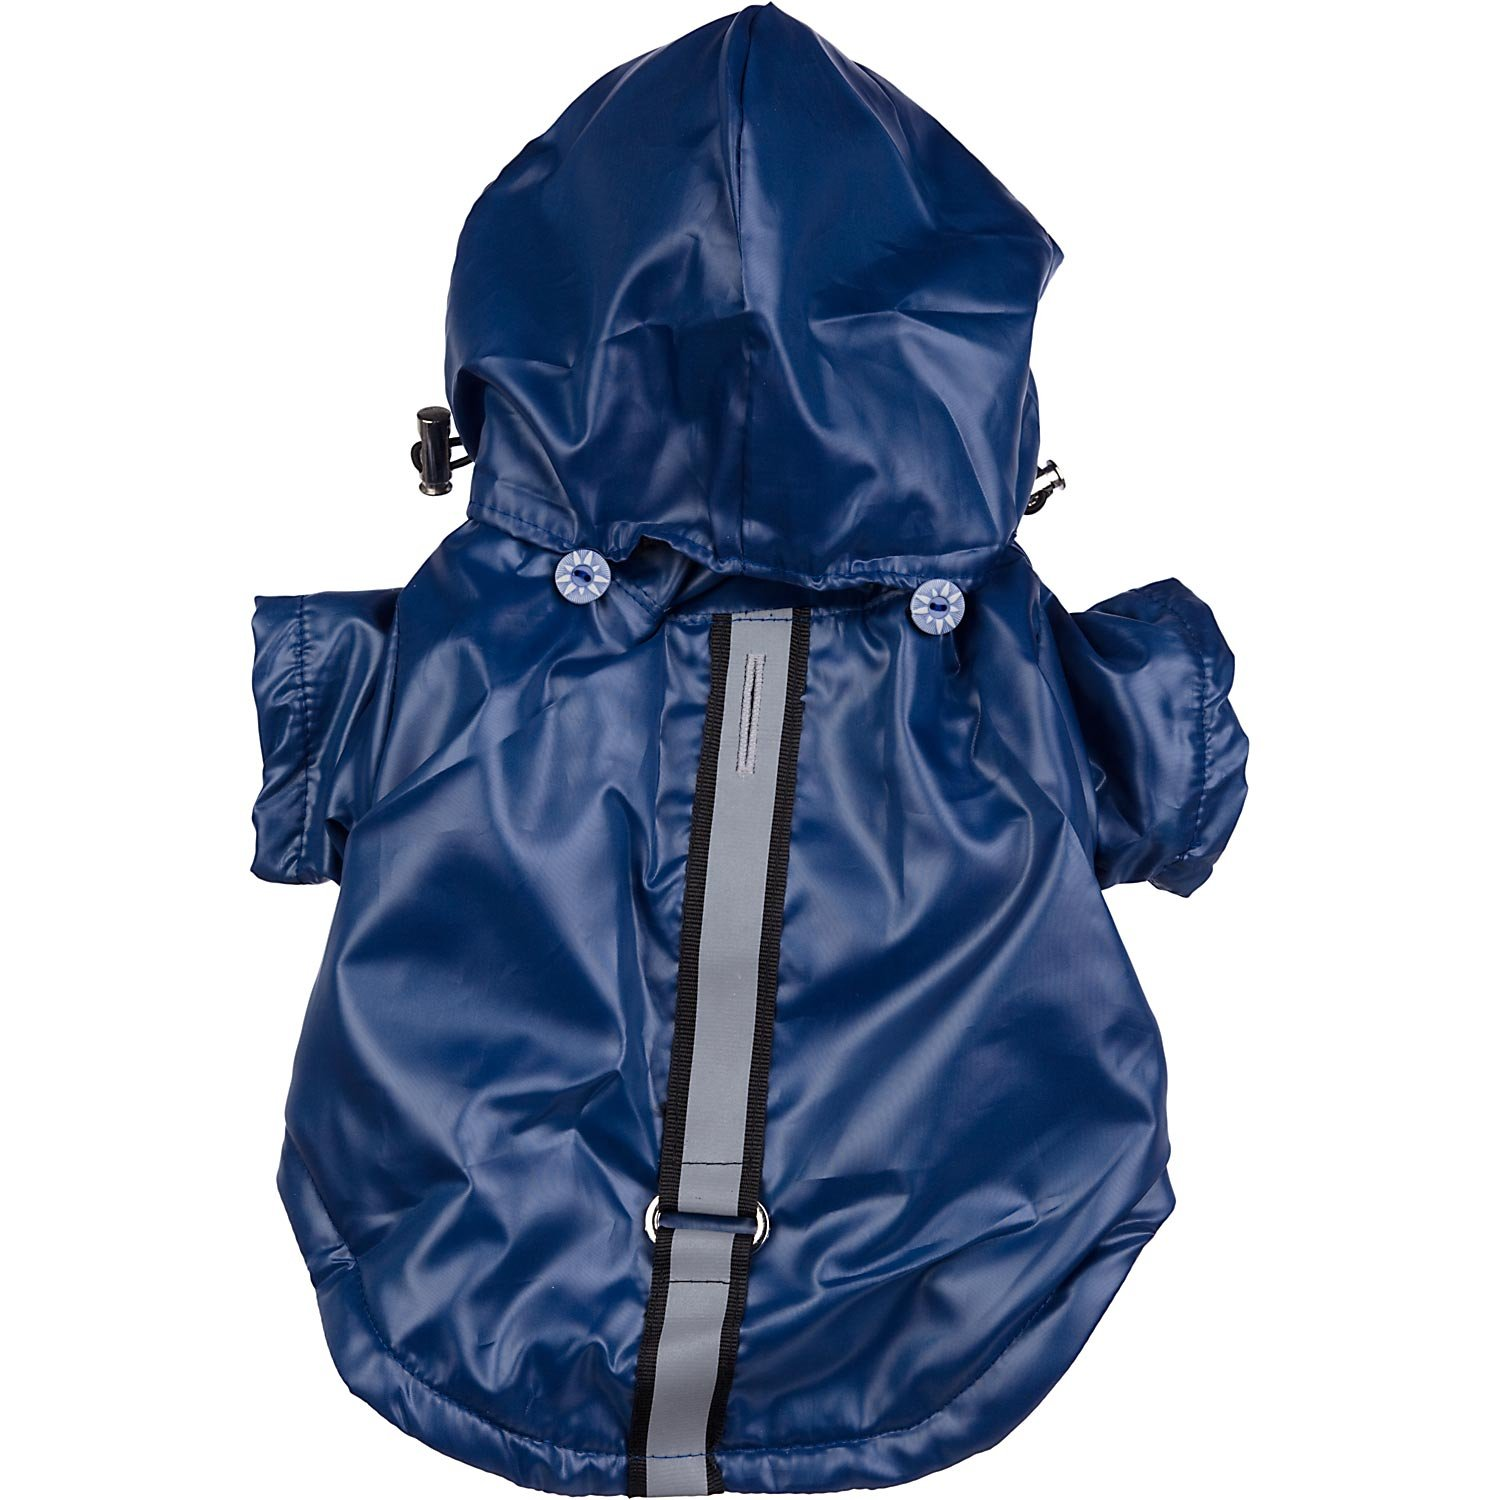 Pet Life Reflecta-Sport' Fashion Insulated Adjustable and Reflective Windproof Water-Resistant Pet Dog Coat Jacket Rainbreaker w/Removable Hood, Small, Dark Blue by Pet Life (Image #2)